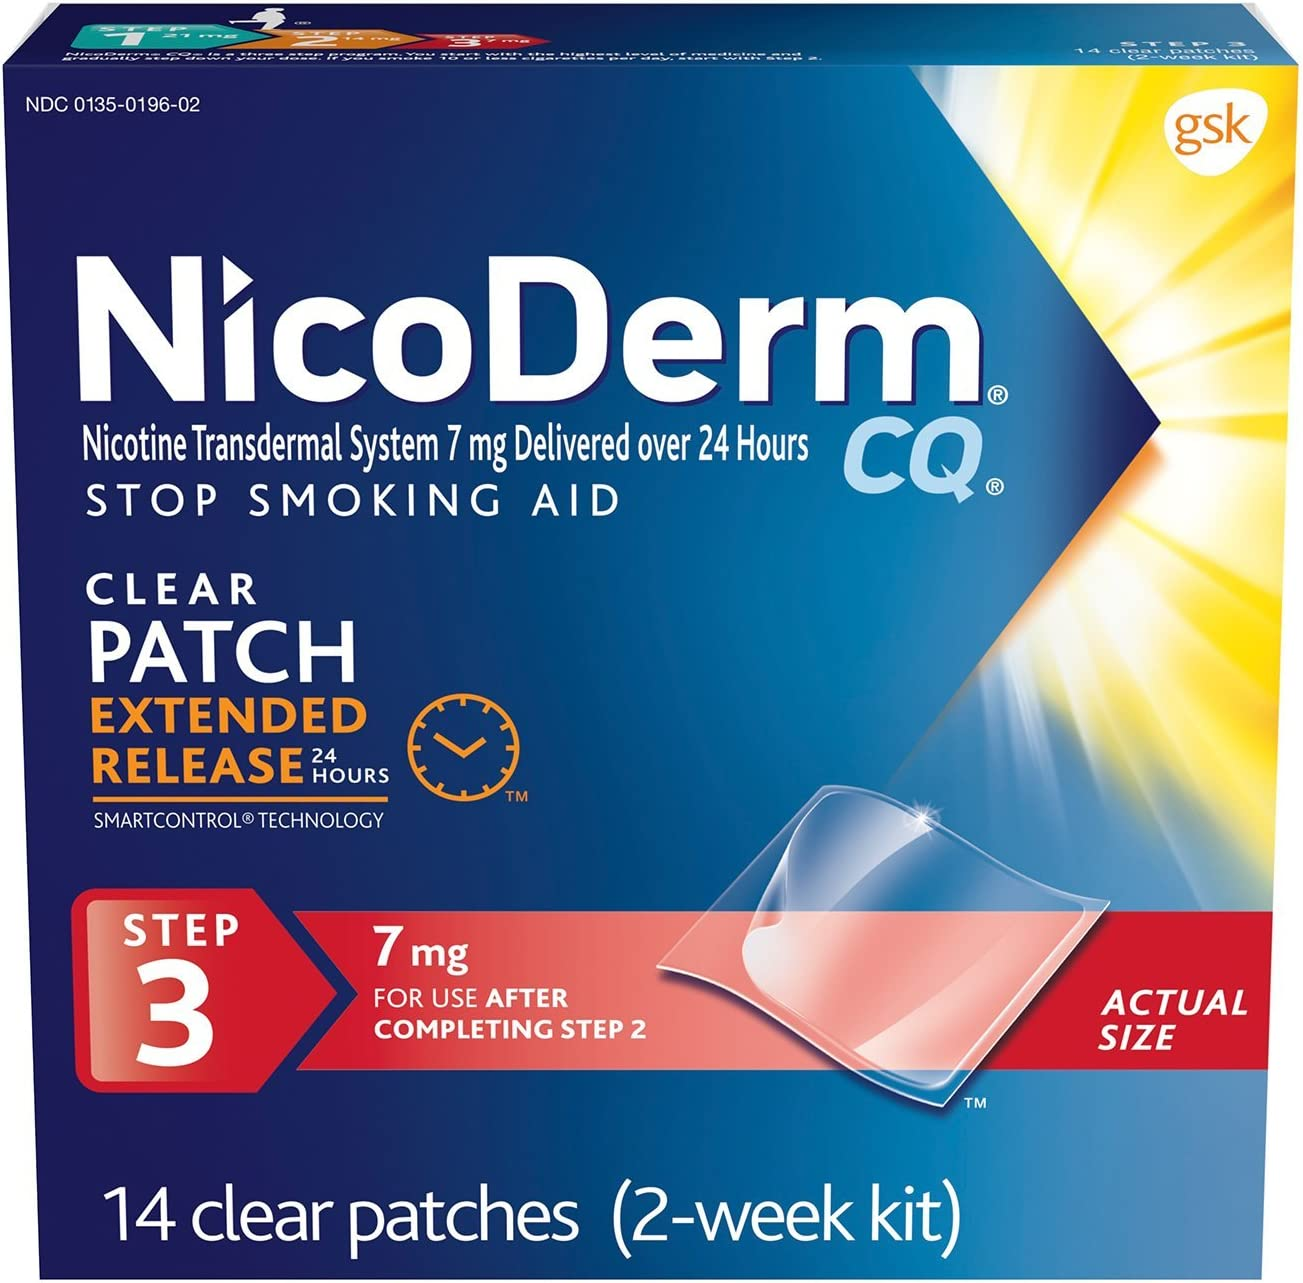 B0000536V6 NicoDerm CQ Stop Smoking Aid 7 milligram Clear Nicotine Patches for Quitting Smoking, Step 3, 14 Count 71Oiw3XfO0L